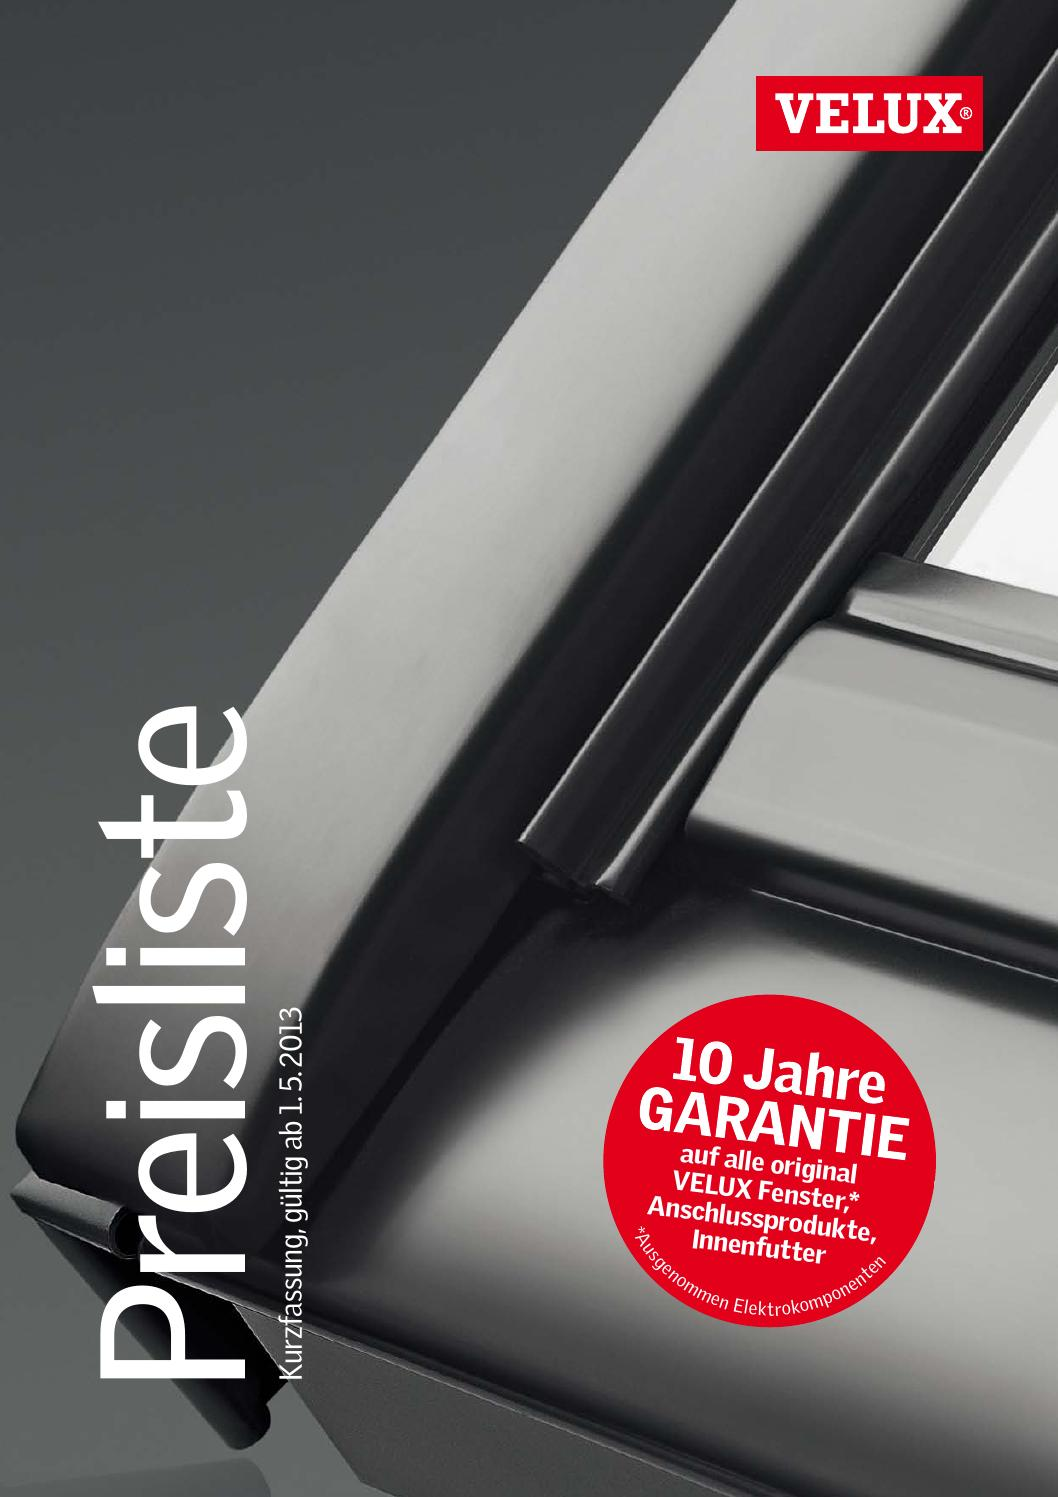 velux preisliste by kaiser design issuu. Black Bedroom Furniture Sets. Home Design Ideas